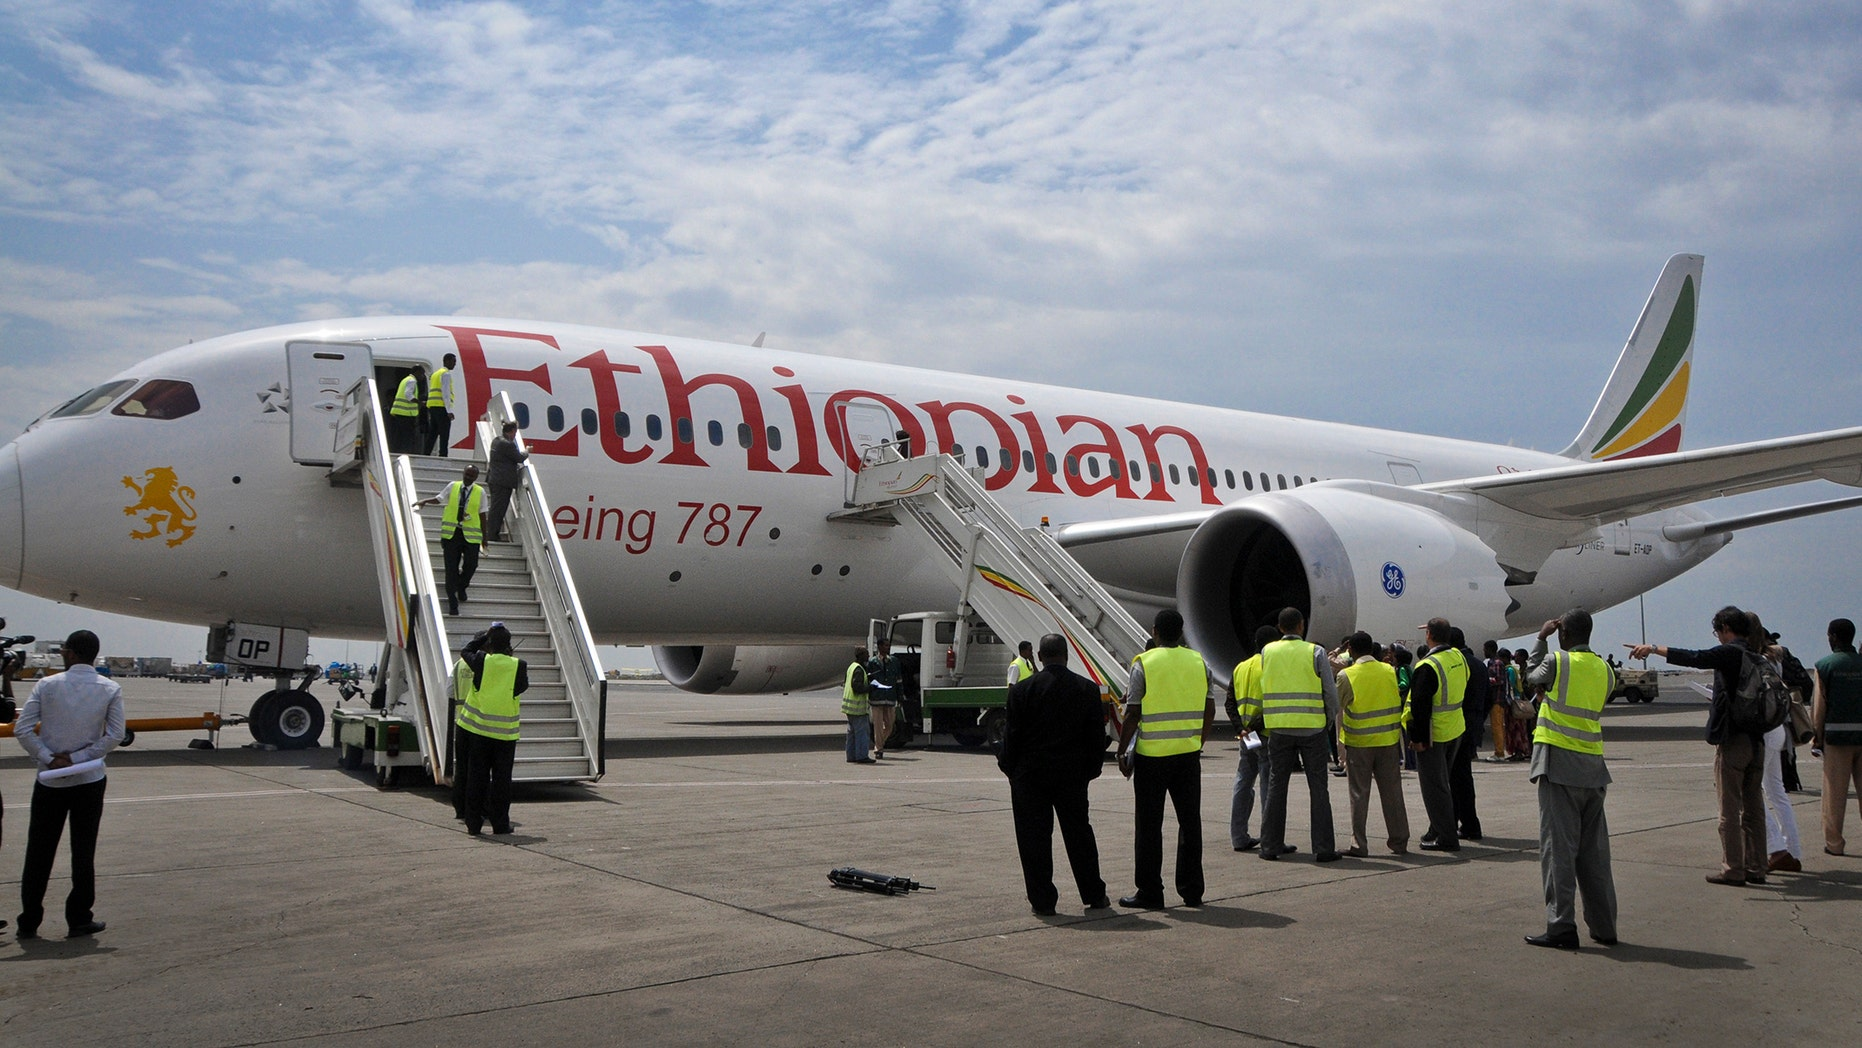 April 27, 2013: An Ethiopian Airlines' Boeing 787 Dreamliner prepares to take off from Addis Ababa airport in Ethiopia.